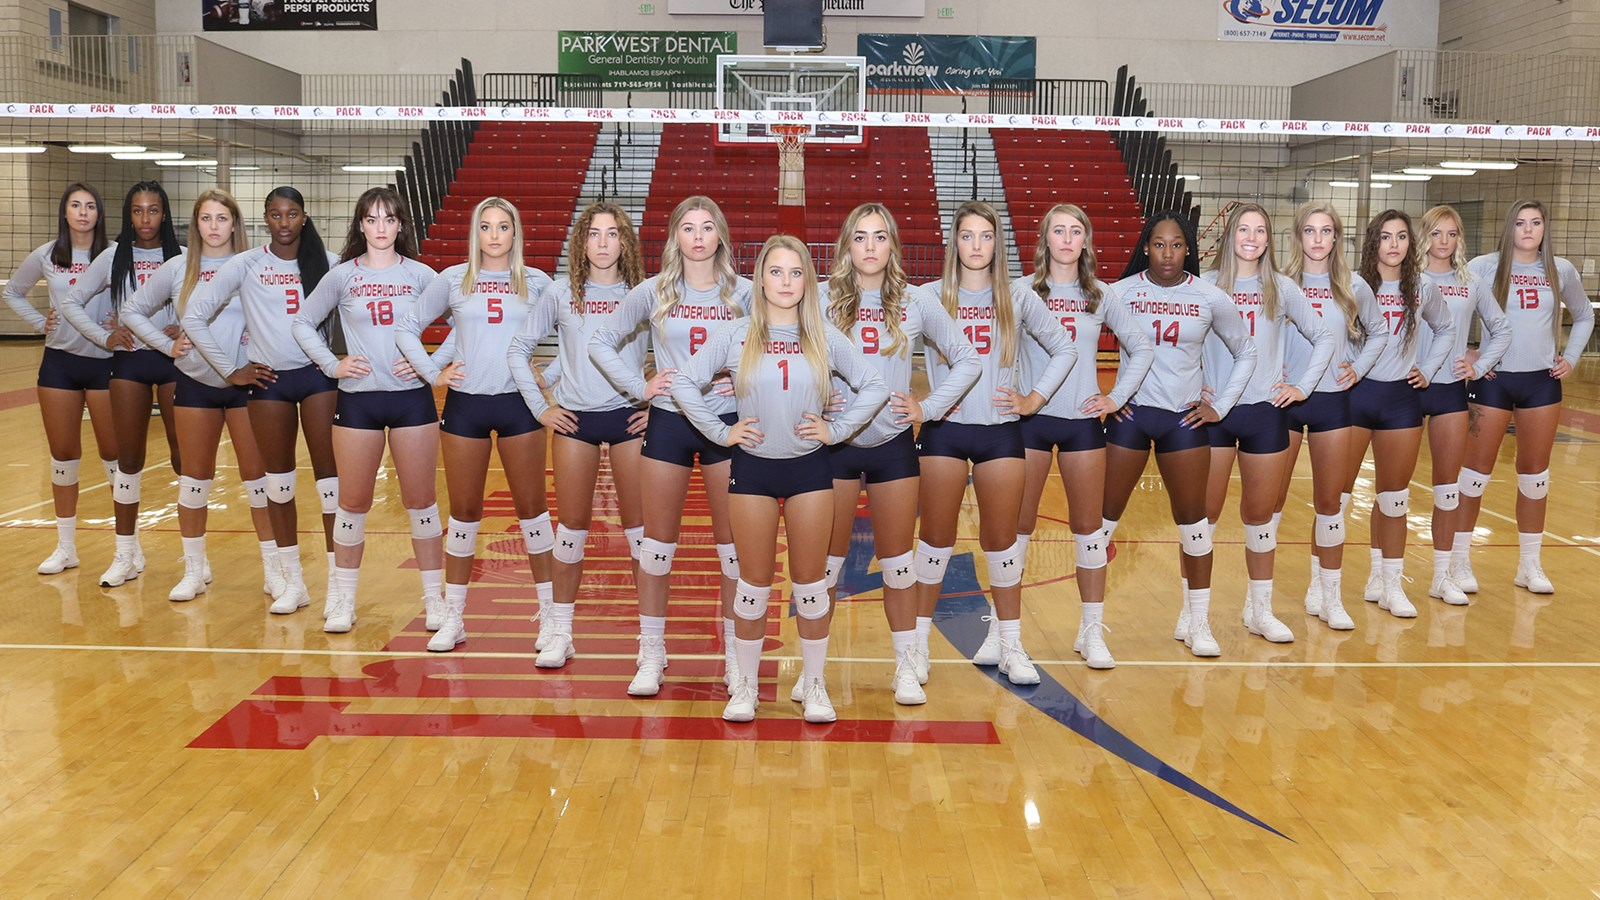 2019 Women S Volleyball Roster Colorado State University Pueblo